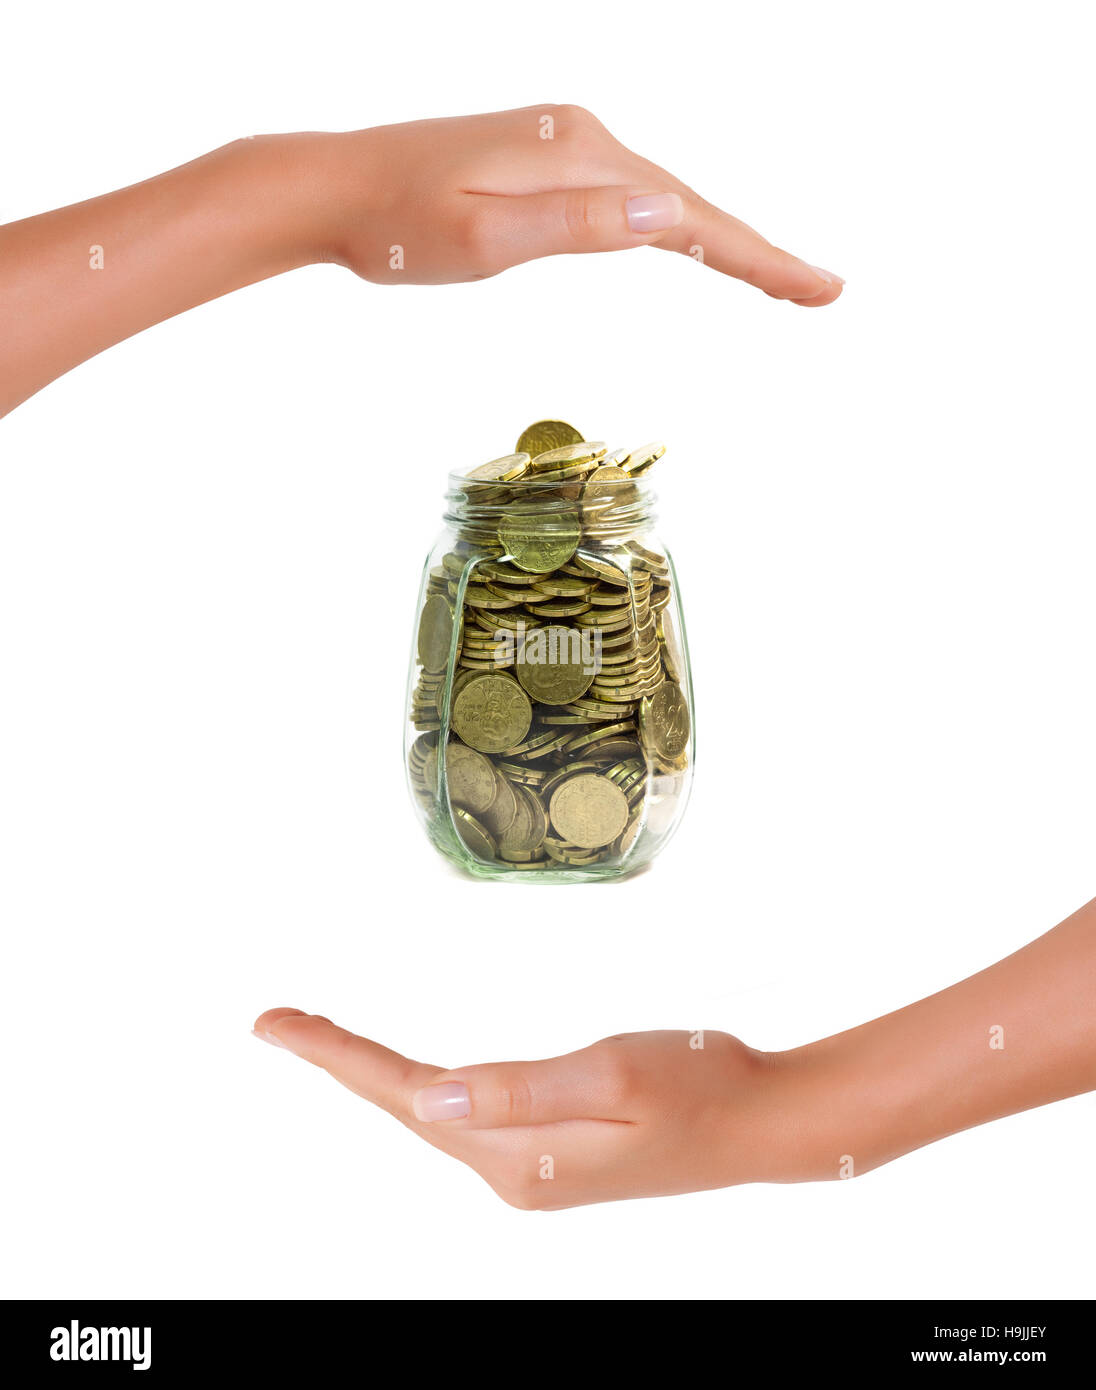 Euro coins in a jar  between hands on white background, concept of saving money and protection of investment - Stock Image